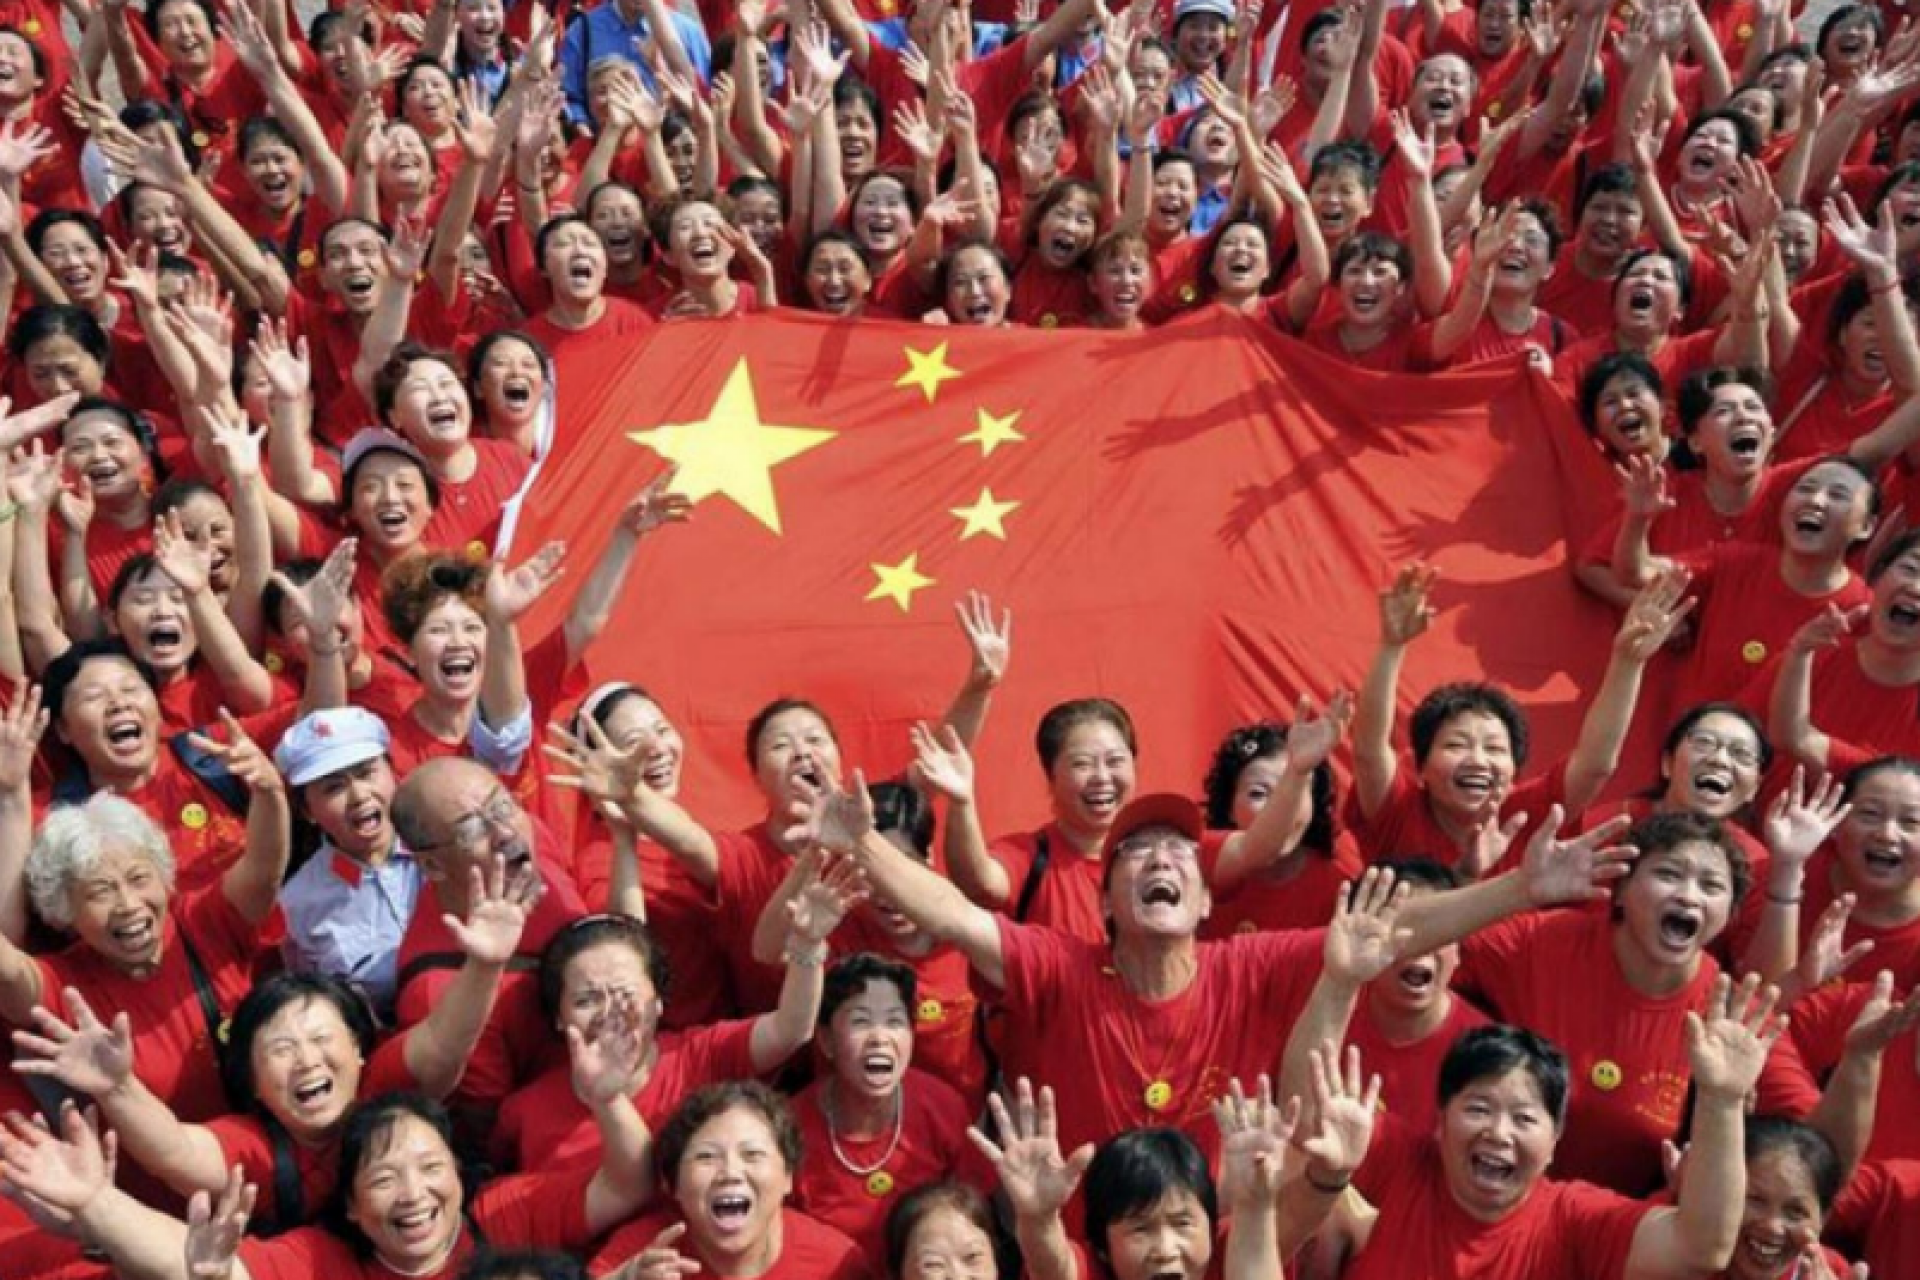 100 thousand Chinese bought tickets for the World Cup 2018